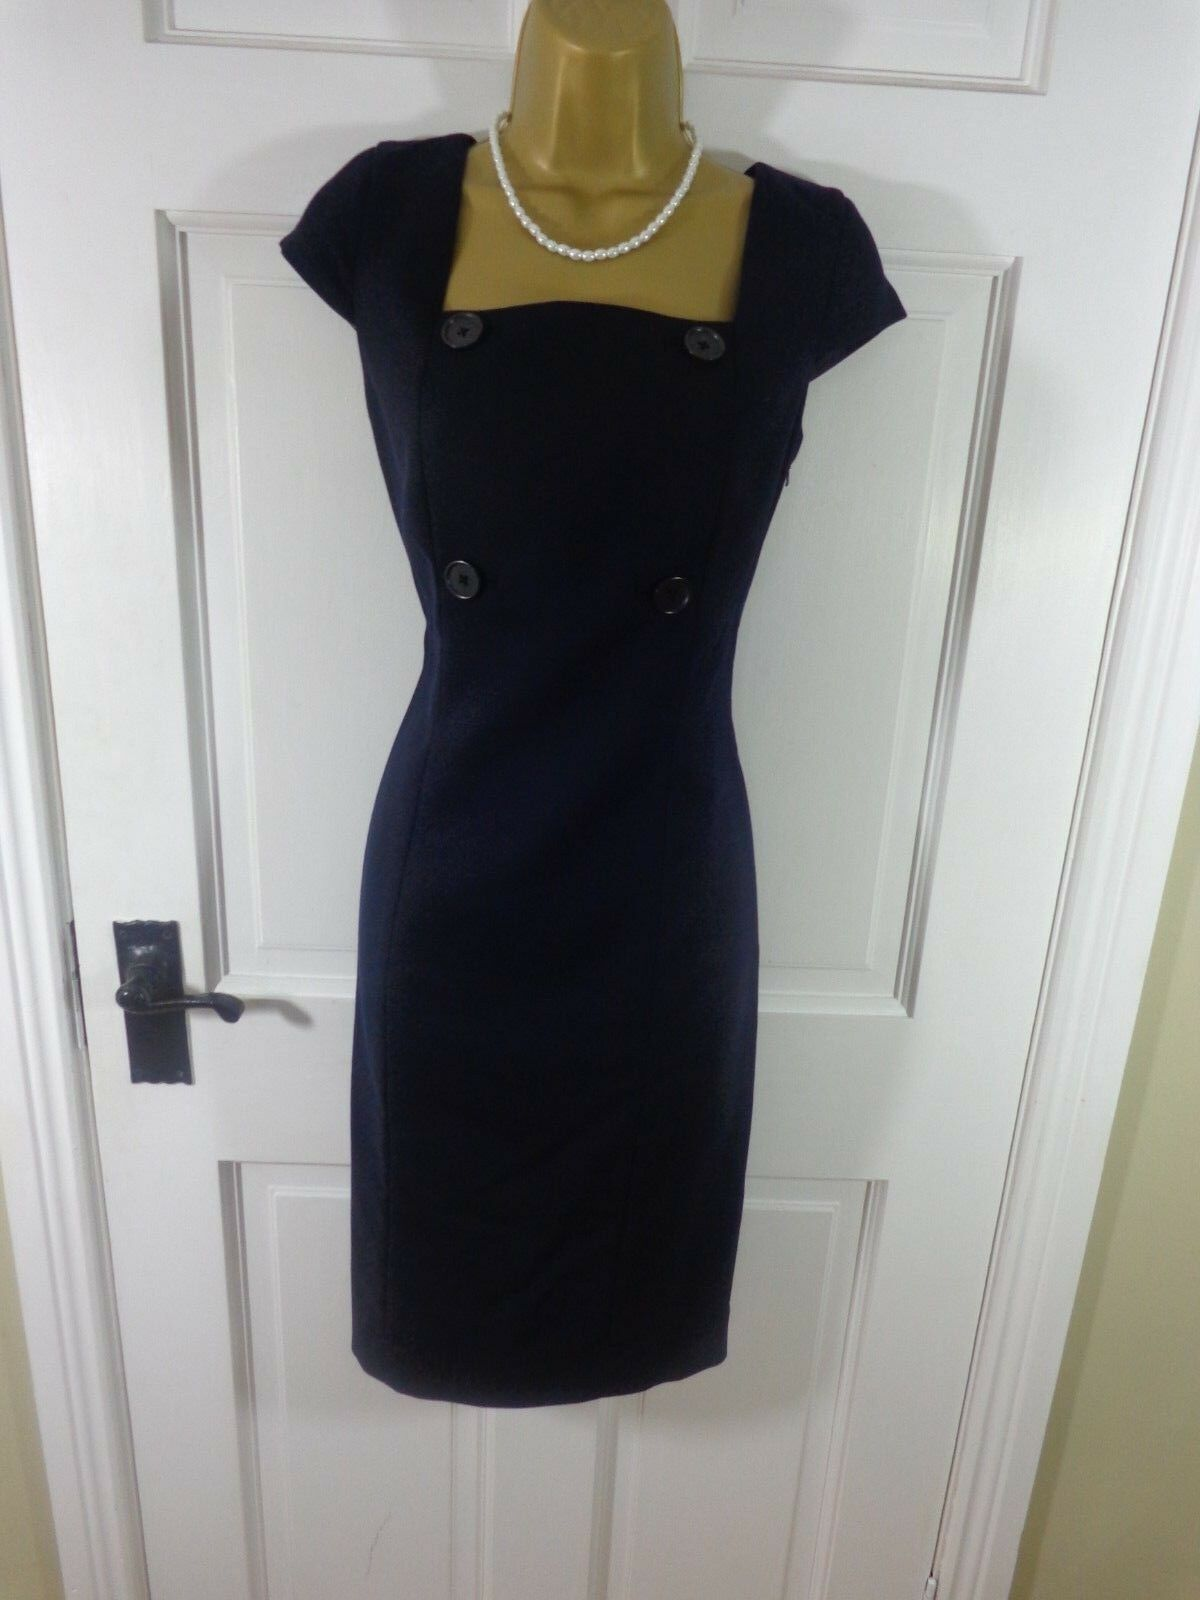 Hobbs London Navy bluee 100% WOOL Lined Pinafore Style Dress, Exc Cond